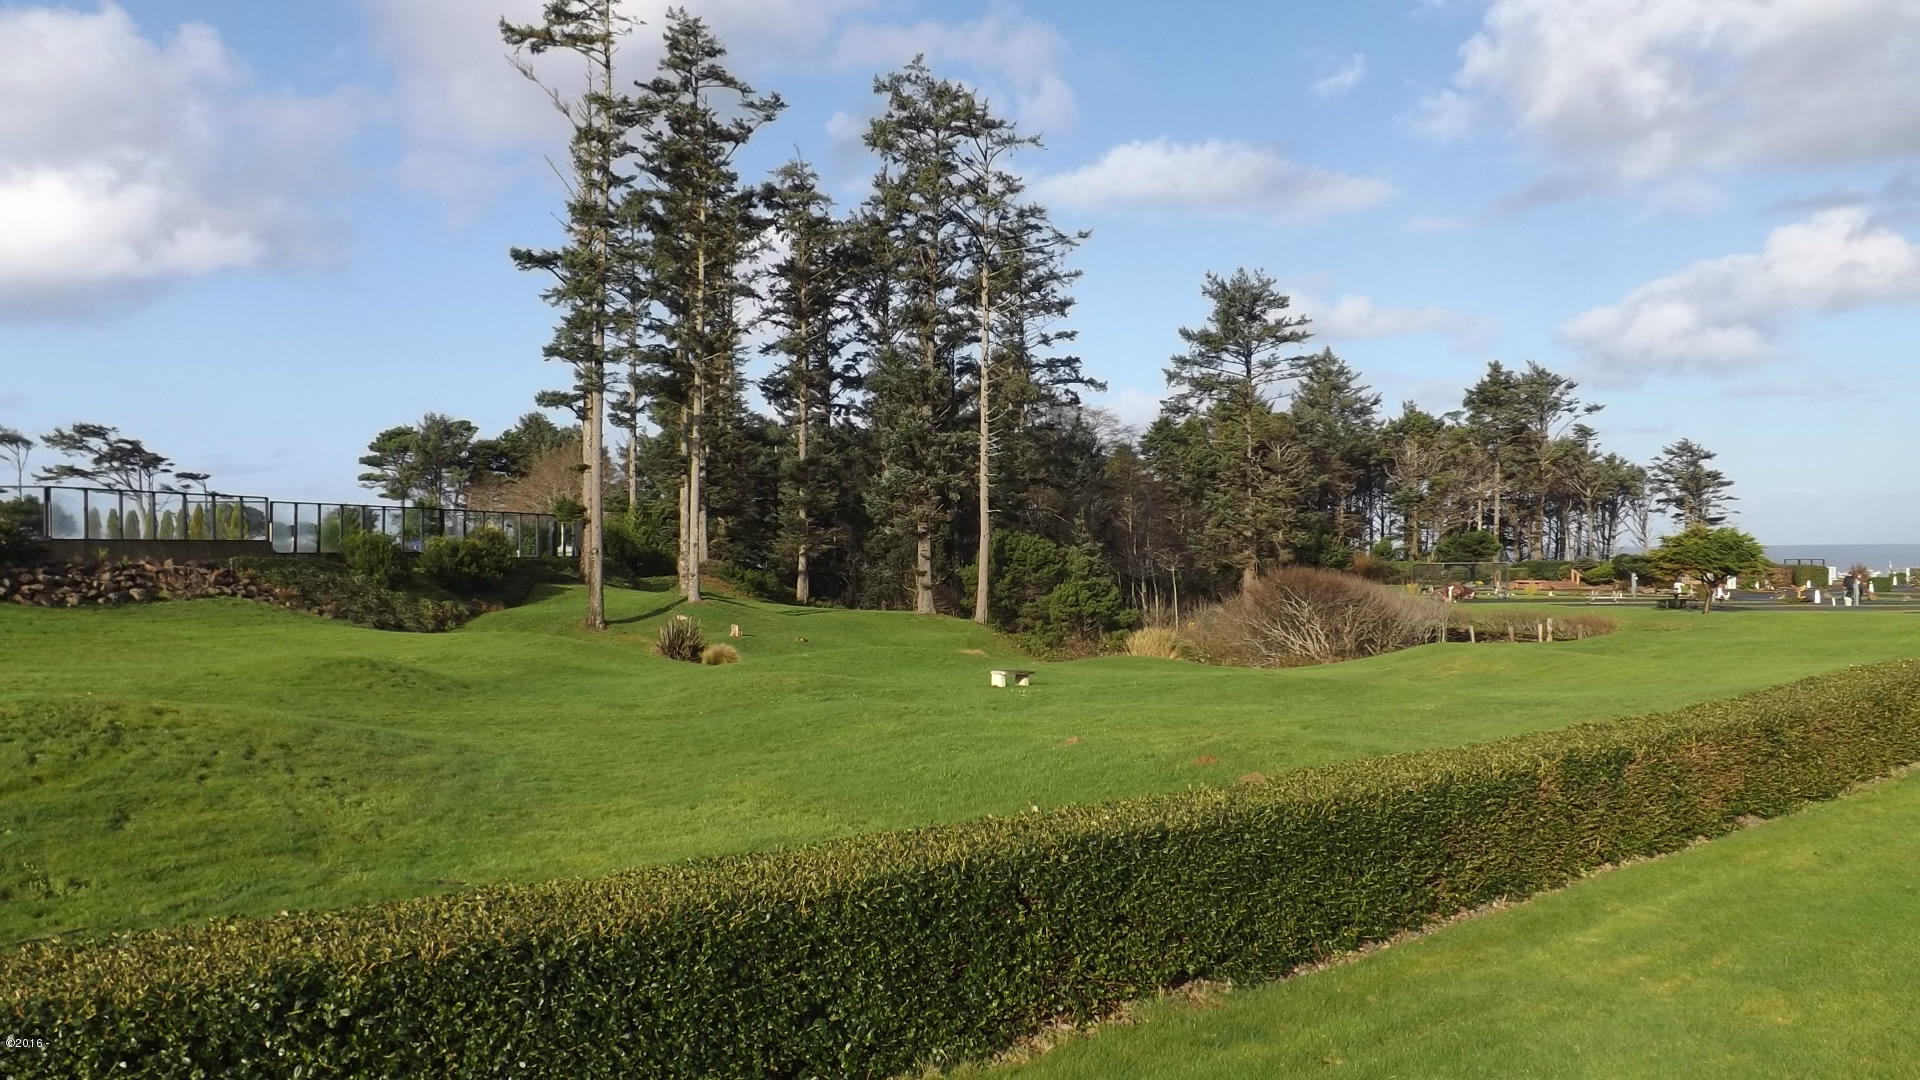 6225 N. Coast Hwy Lot 109, Newport, OR 97365 - Lot 109 Park and woods view NW 11-21-16